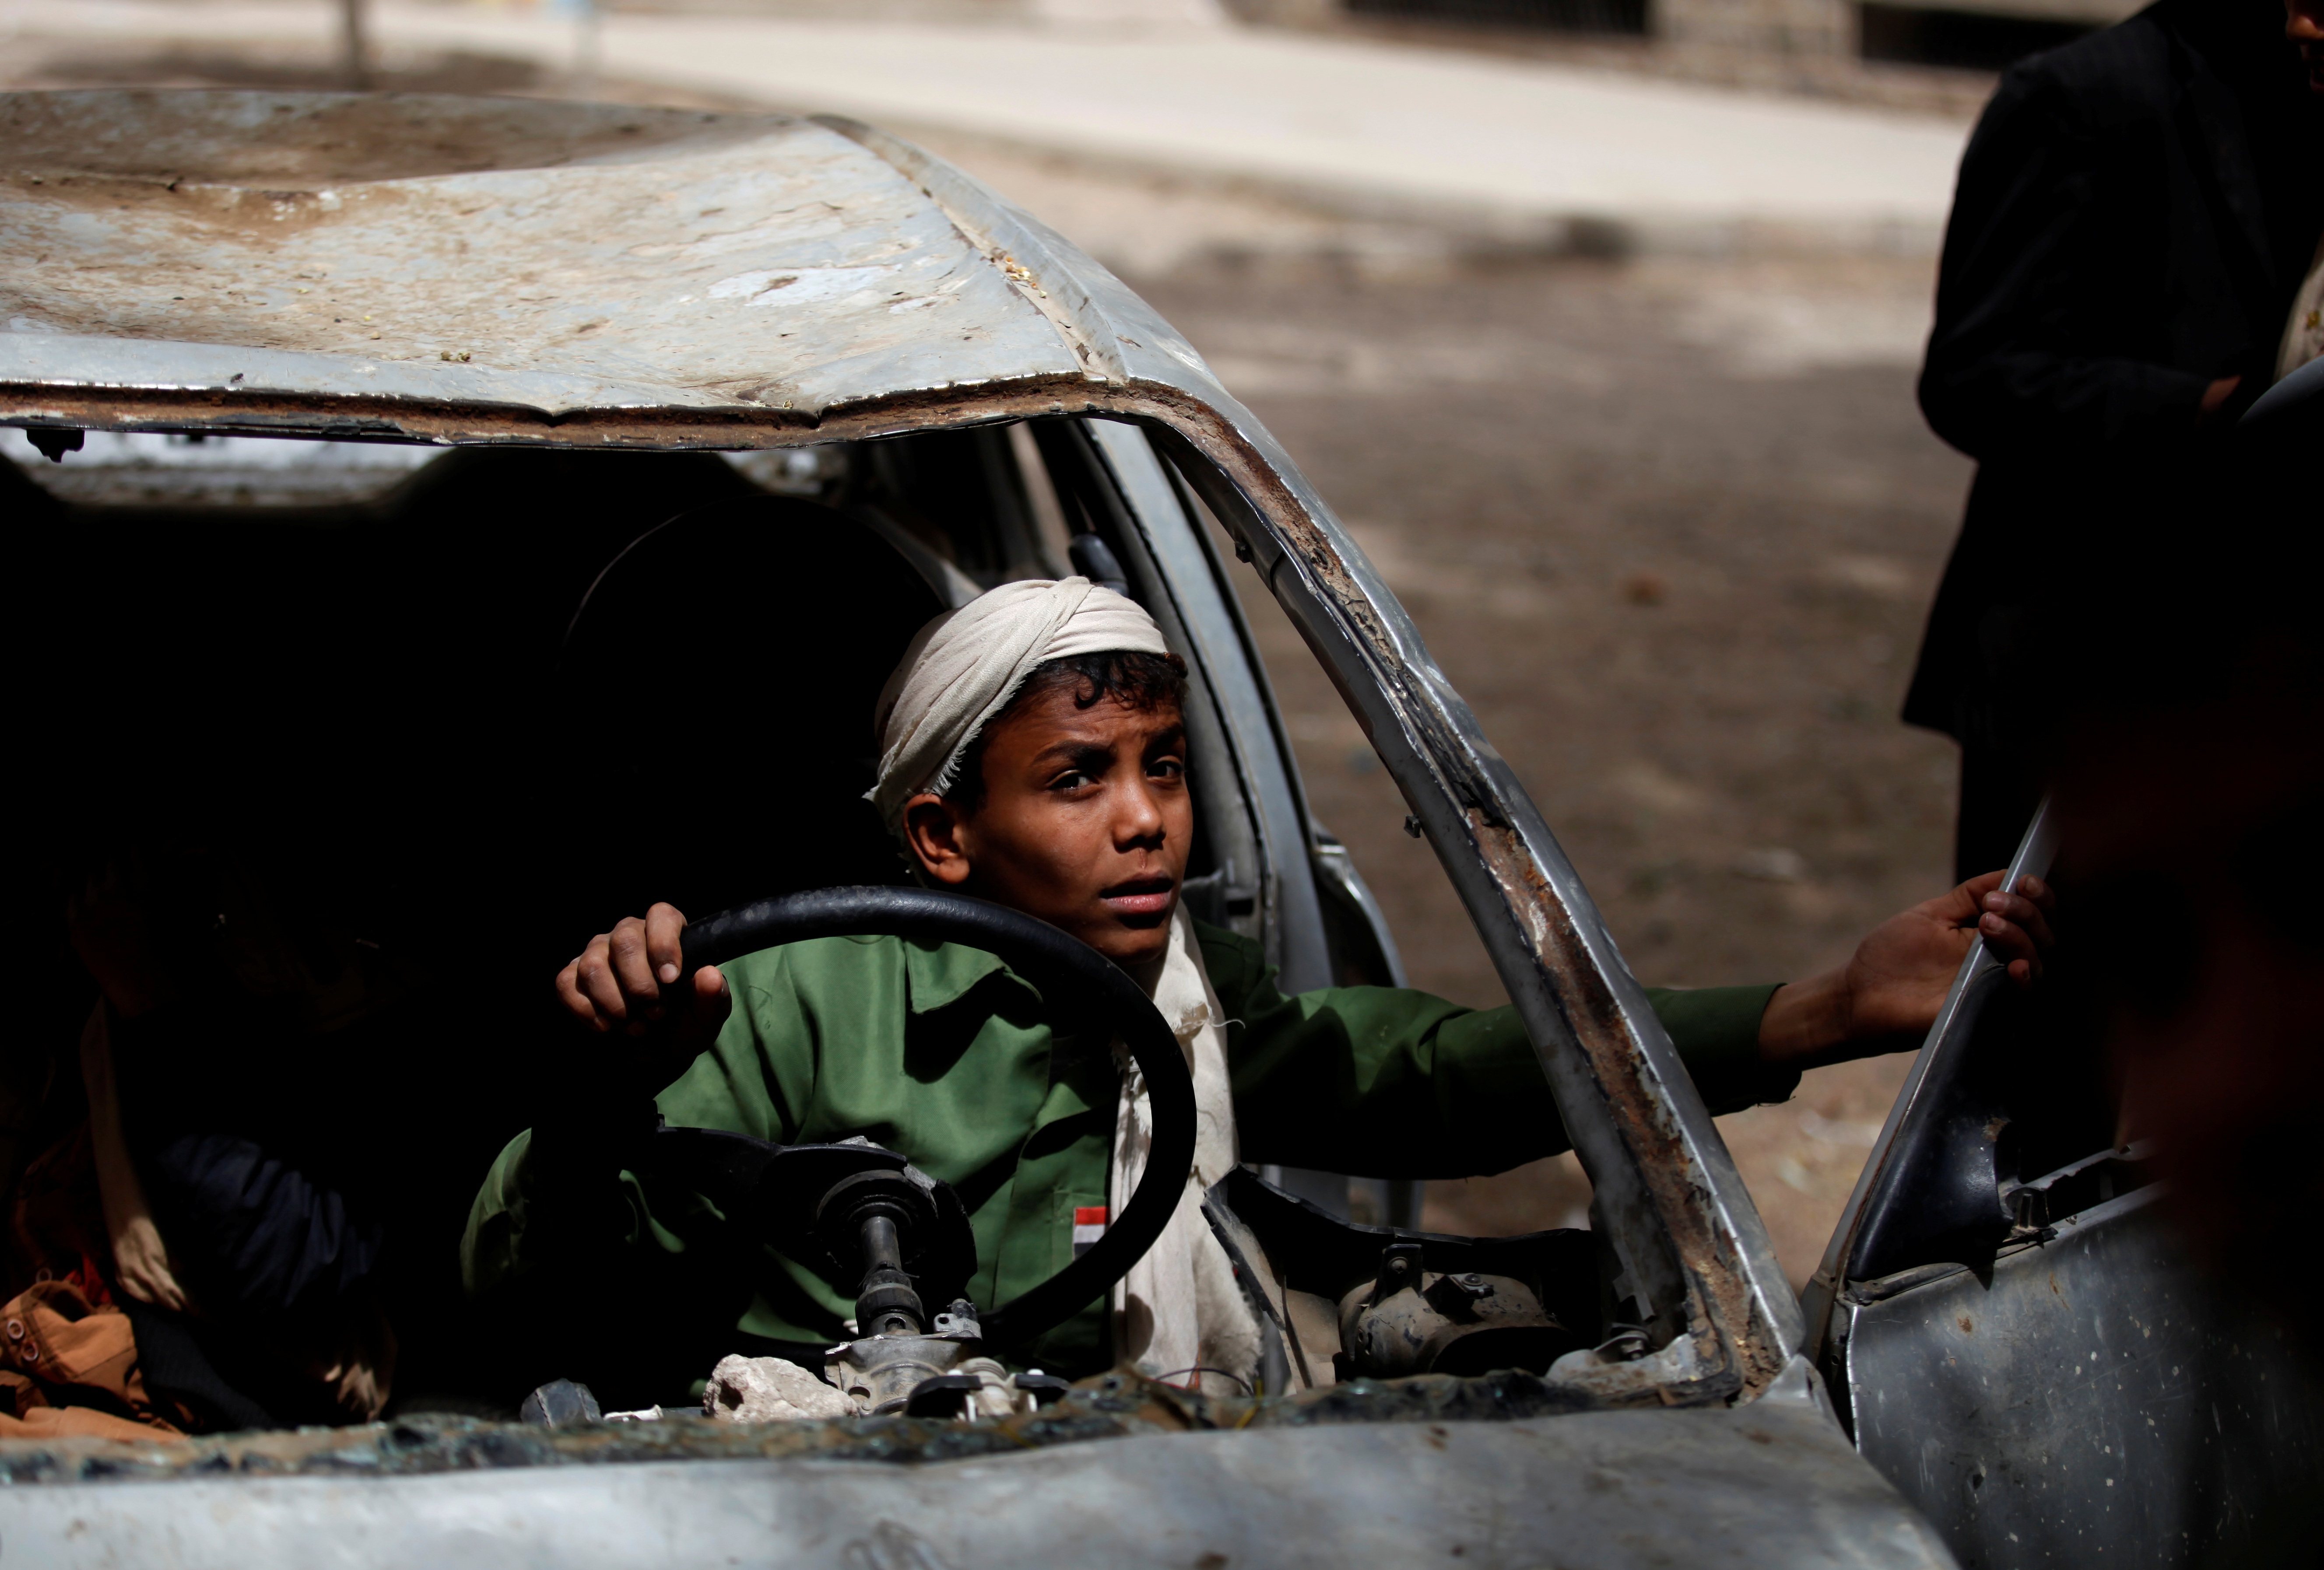 "SANAA 2017-03-22 Boys play in an abandoned car in the yard of The al-Shawkani Foundation for Orphans Care in Sanaa, Yemen, February 18, 2017. REUTERS/Khaled Abdullah SEARCH ""YEMEN ORPHANAGE"" FOR THIS STORY. SEARCH ""WIDER IMAGE"" FOR ALL STORIES. TPX IMAGES OF THE DAY. Photo: / REUTERS / TT / kod 72000"